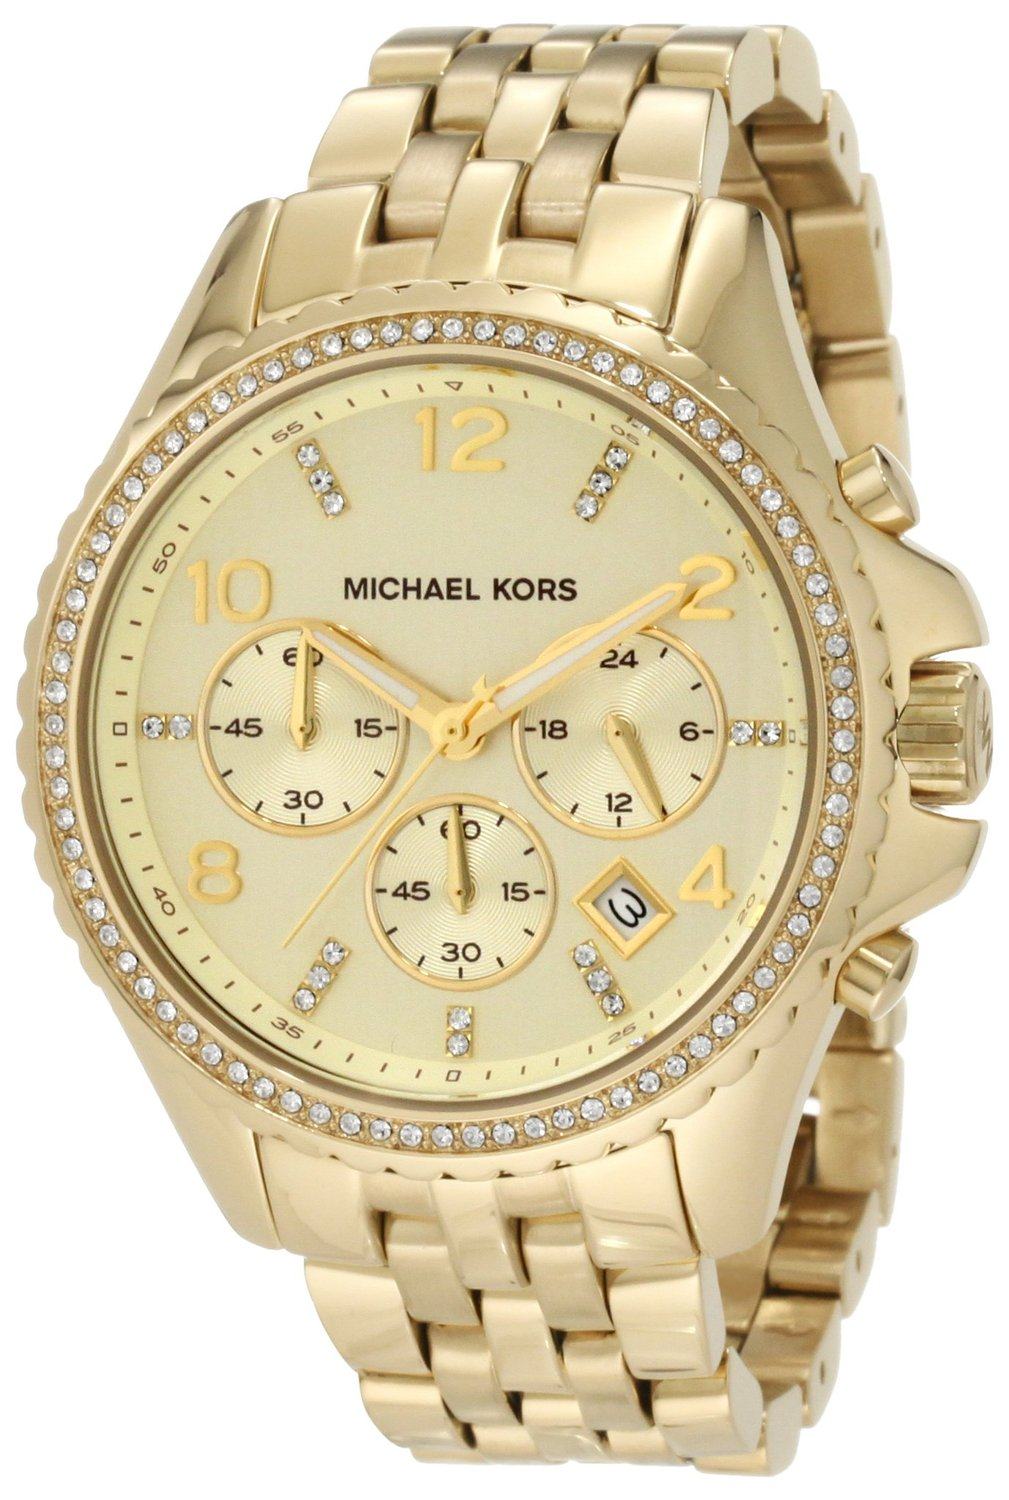 Amazon.com: Michael Kors Women's MK5347 Pilot Gold Watch: Michael Kors: Watches